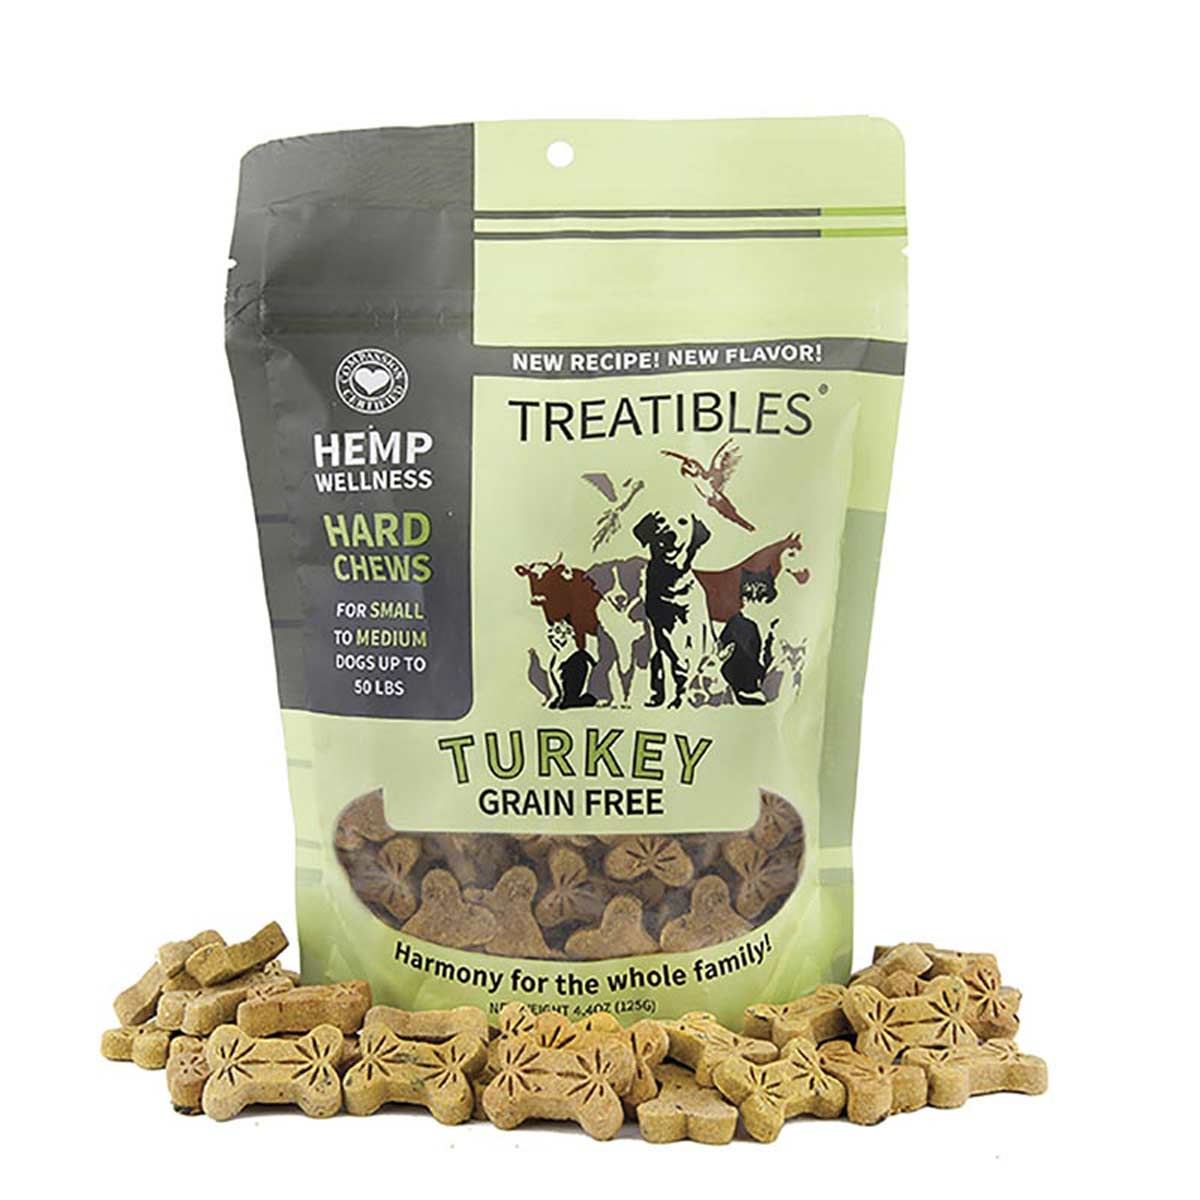 1 mg 75 count Treatibles Small Turkey Hard Chews for Dogs